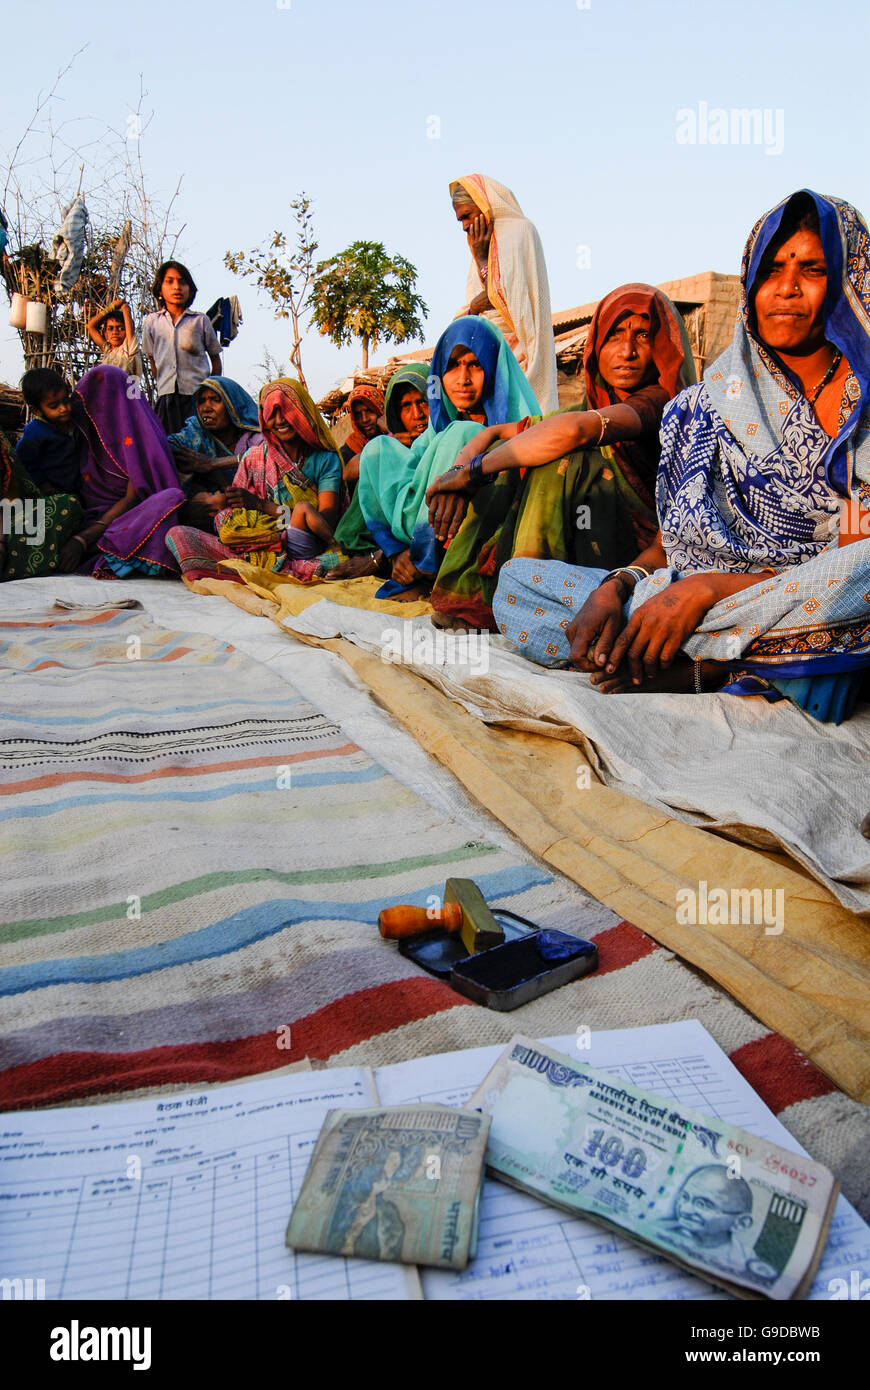 INDIA, Madhya Pradesh , microcredit, rural woman saving bank in village, illiterate uneducated women sign with thumb Stock Photo